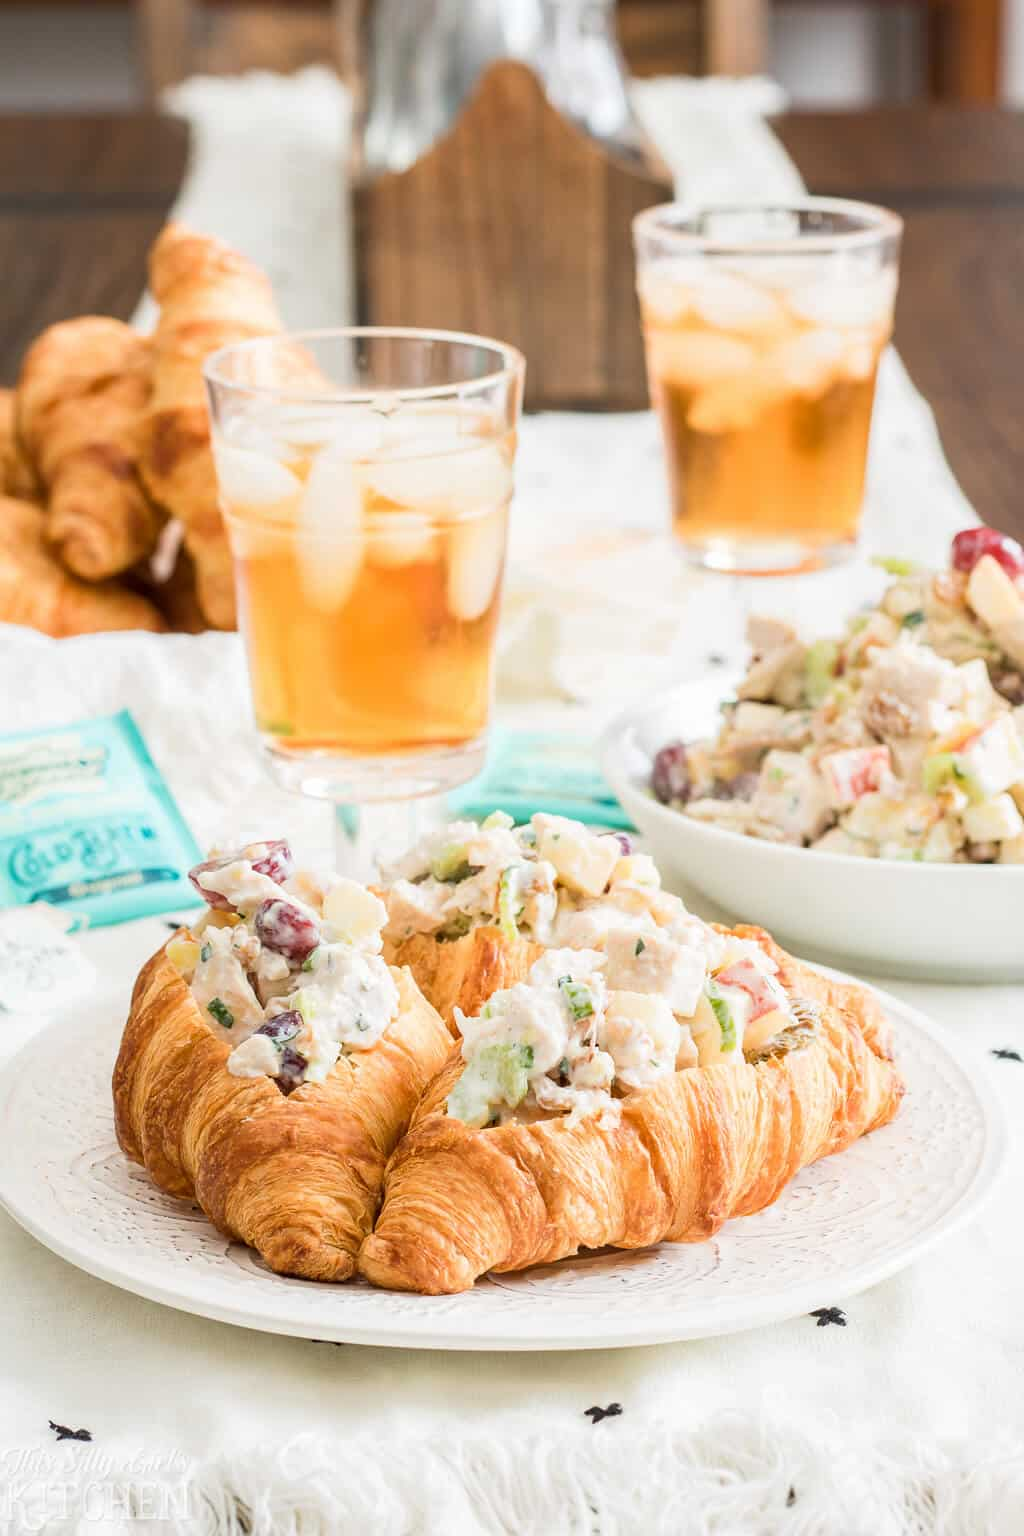 Waldorf Chicken Salad, rotisserie chicken and crisp fruits tossed with a tangy pineapple yogurt dressing! #Recipe from ThisSillyGirlsKitchen.com #chickensalad @waldorfsalad #salad